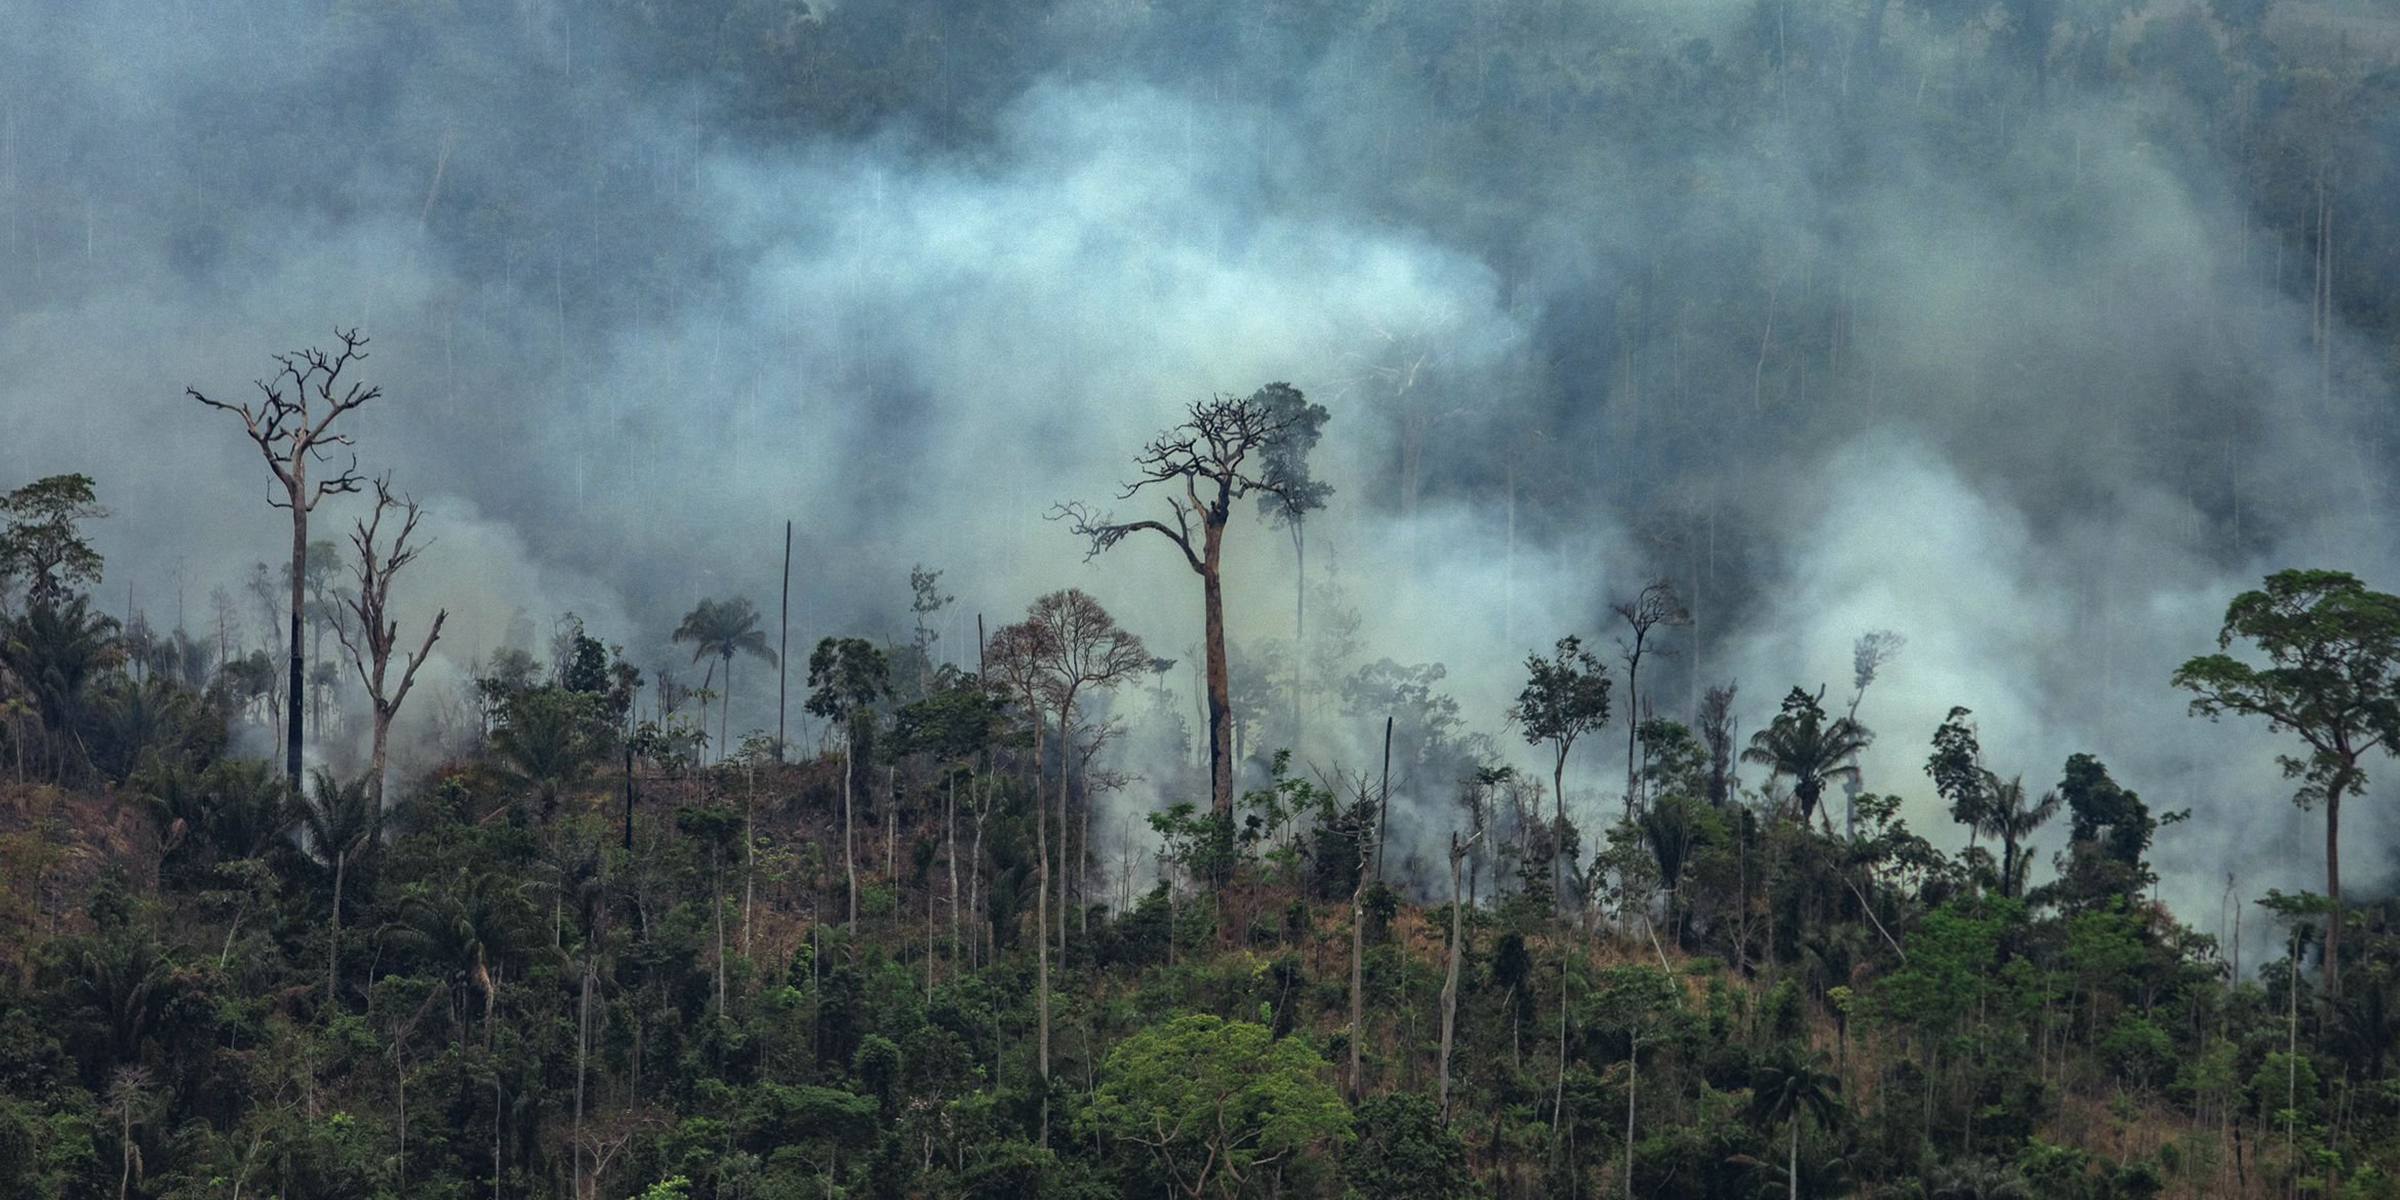 Destruction of just 3% more of Amazon could have terrible effects worldwide, scientists say